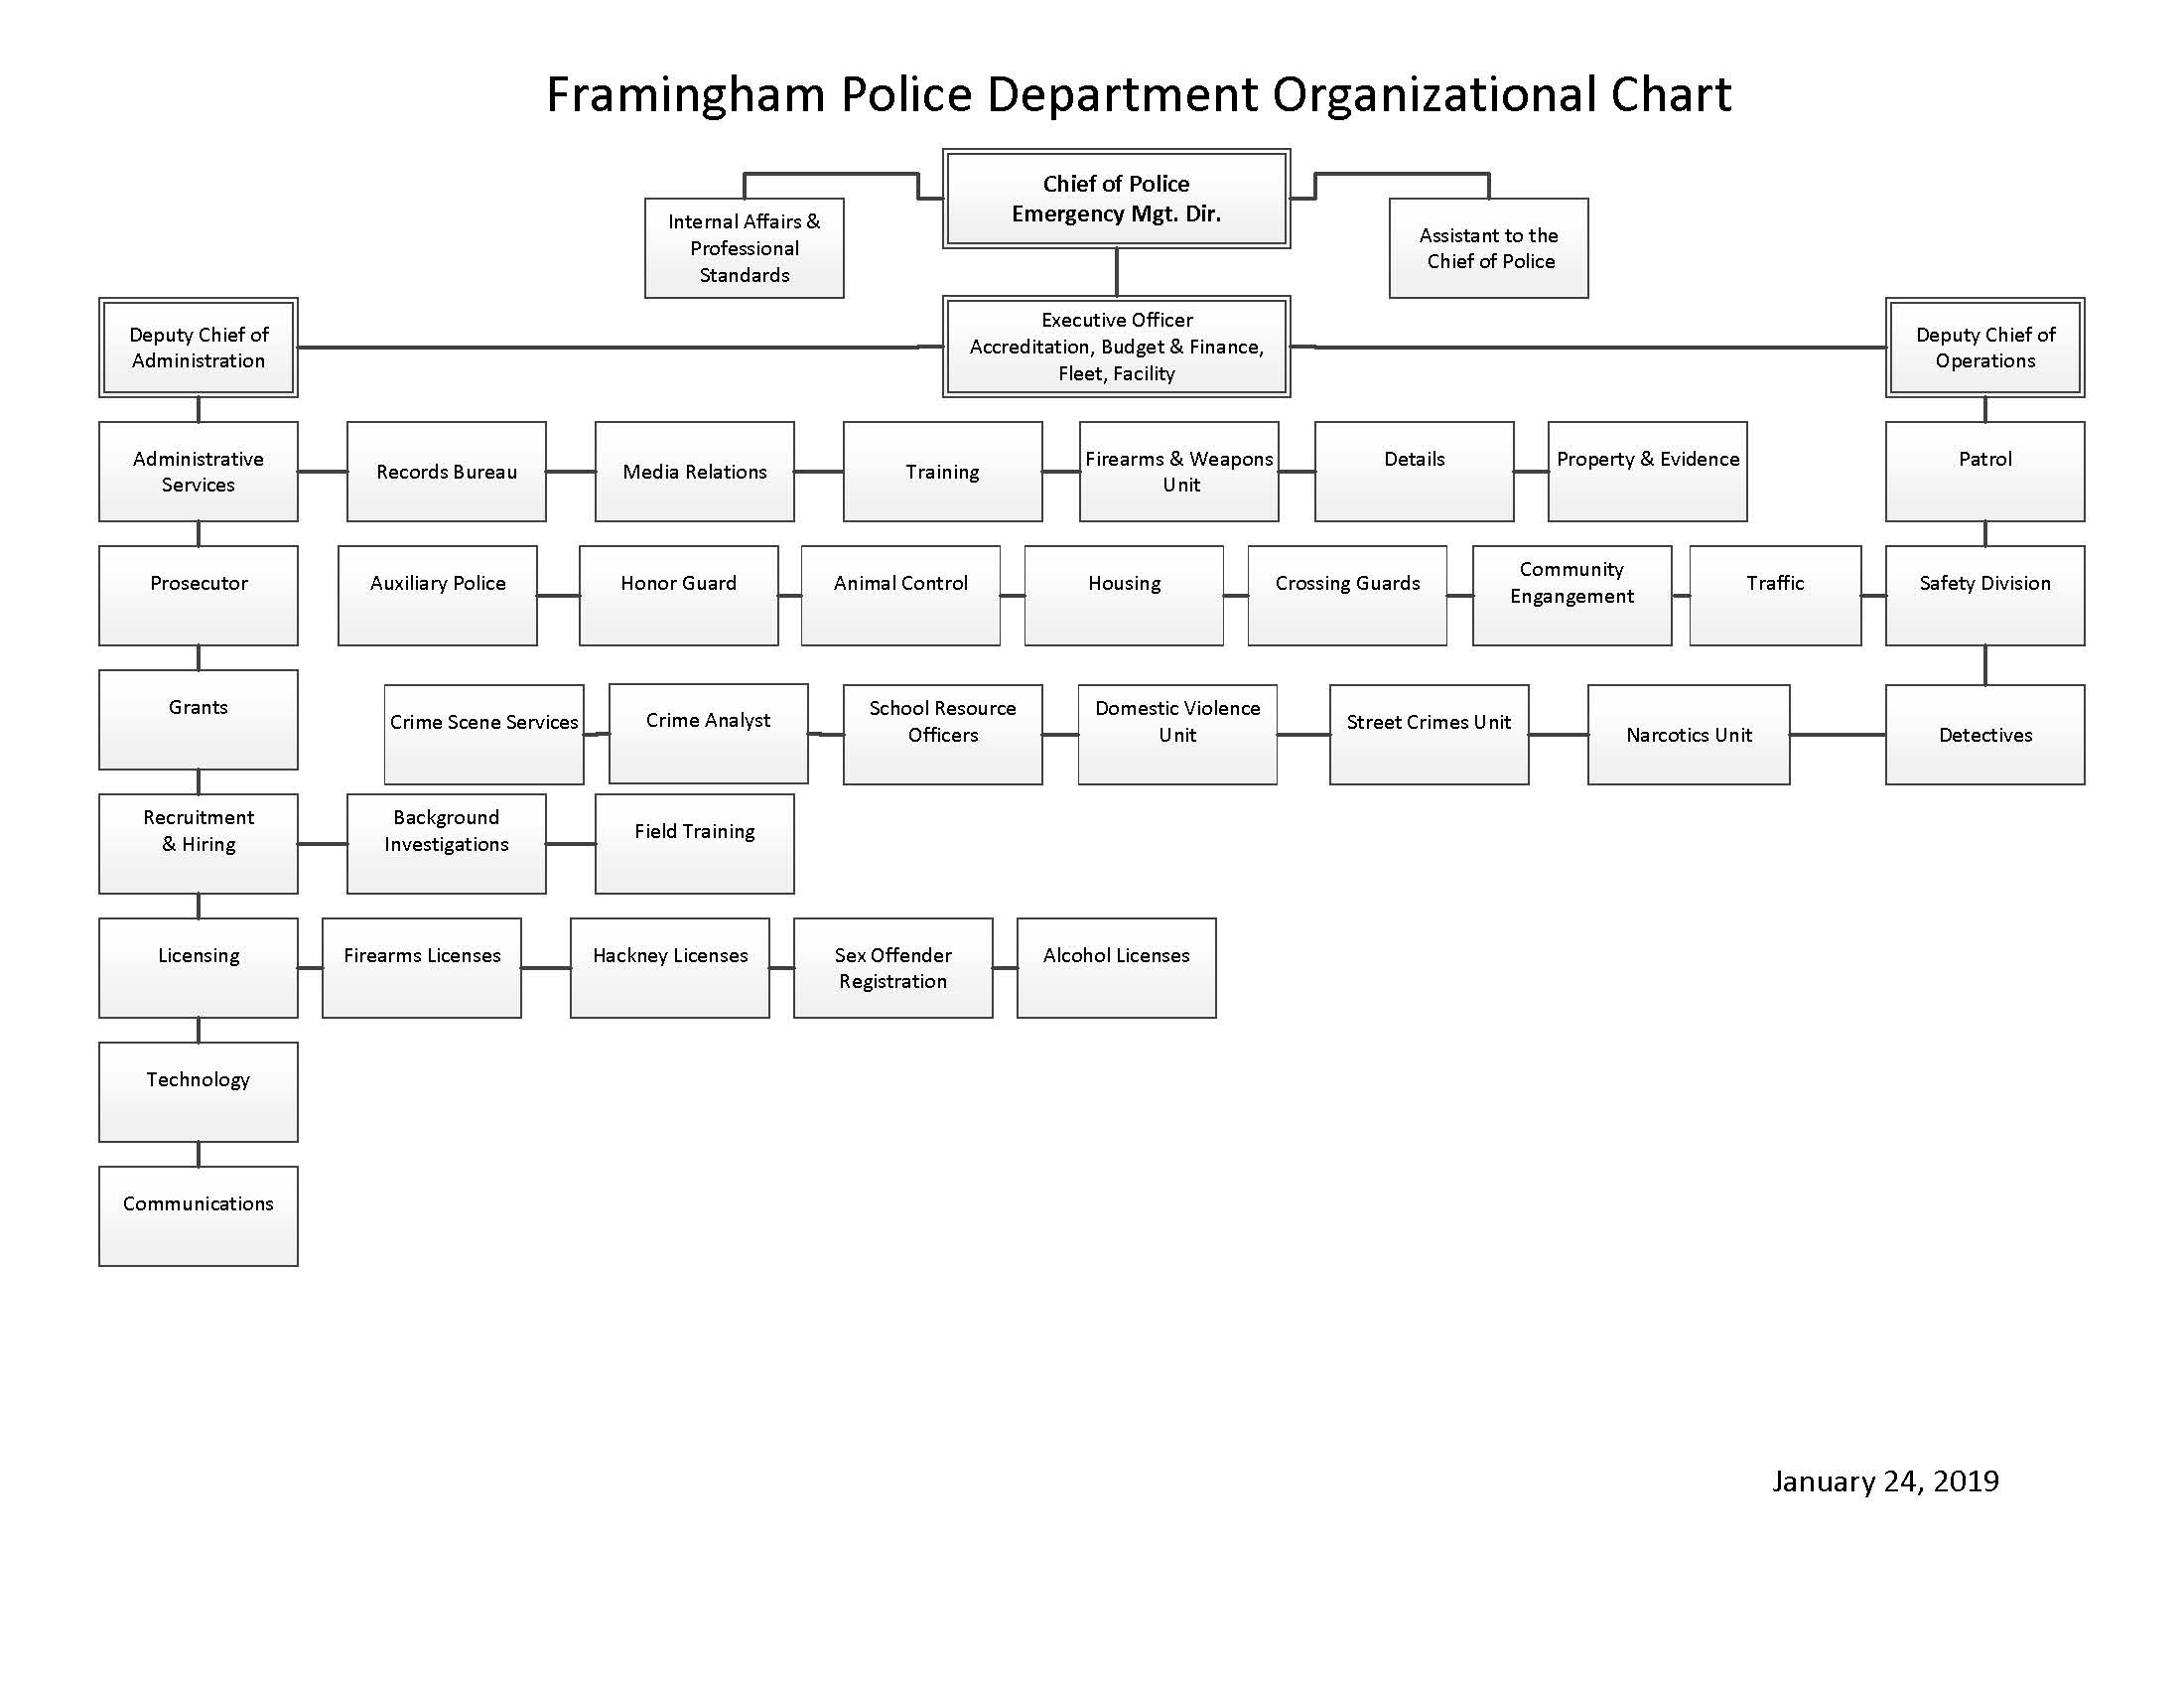 NEW_PD ORG CHART_REVISED_01242019